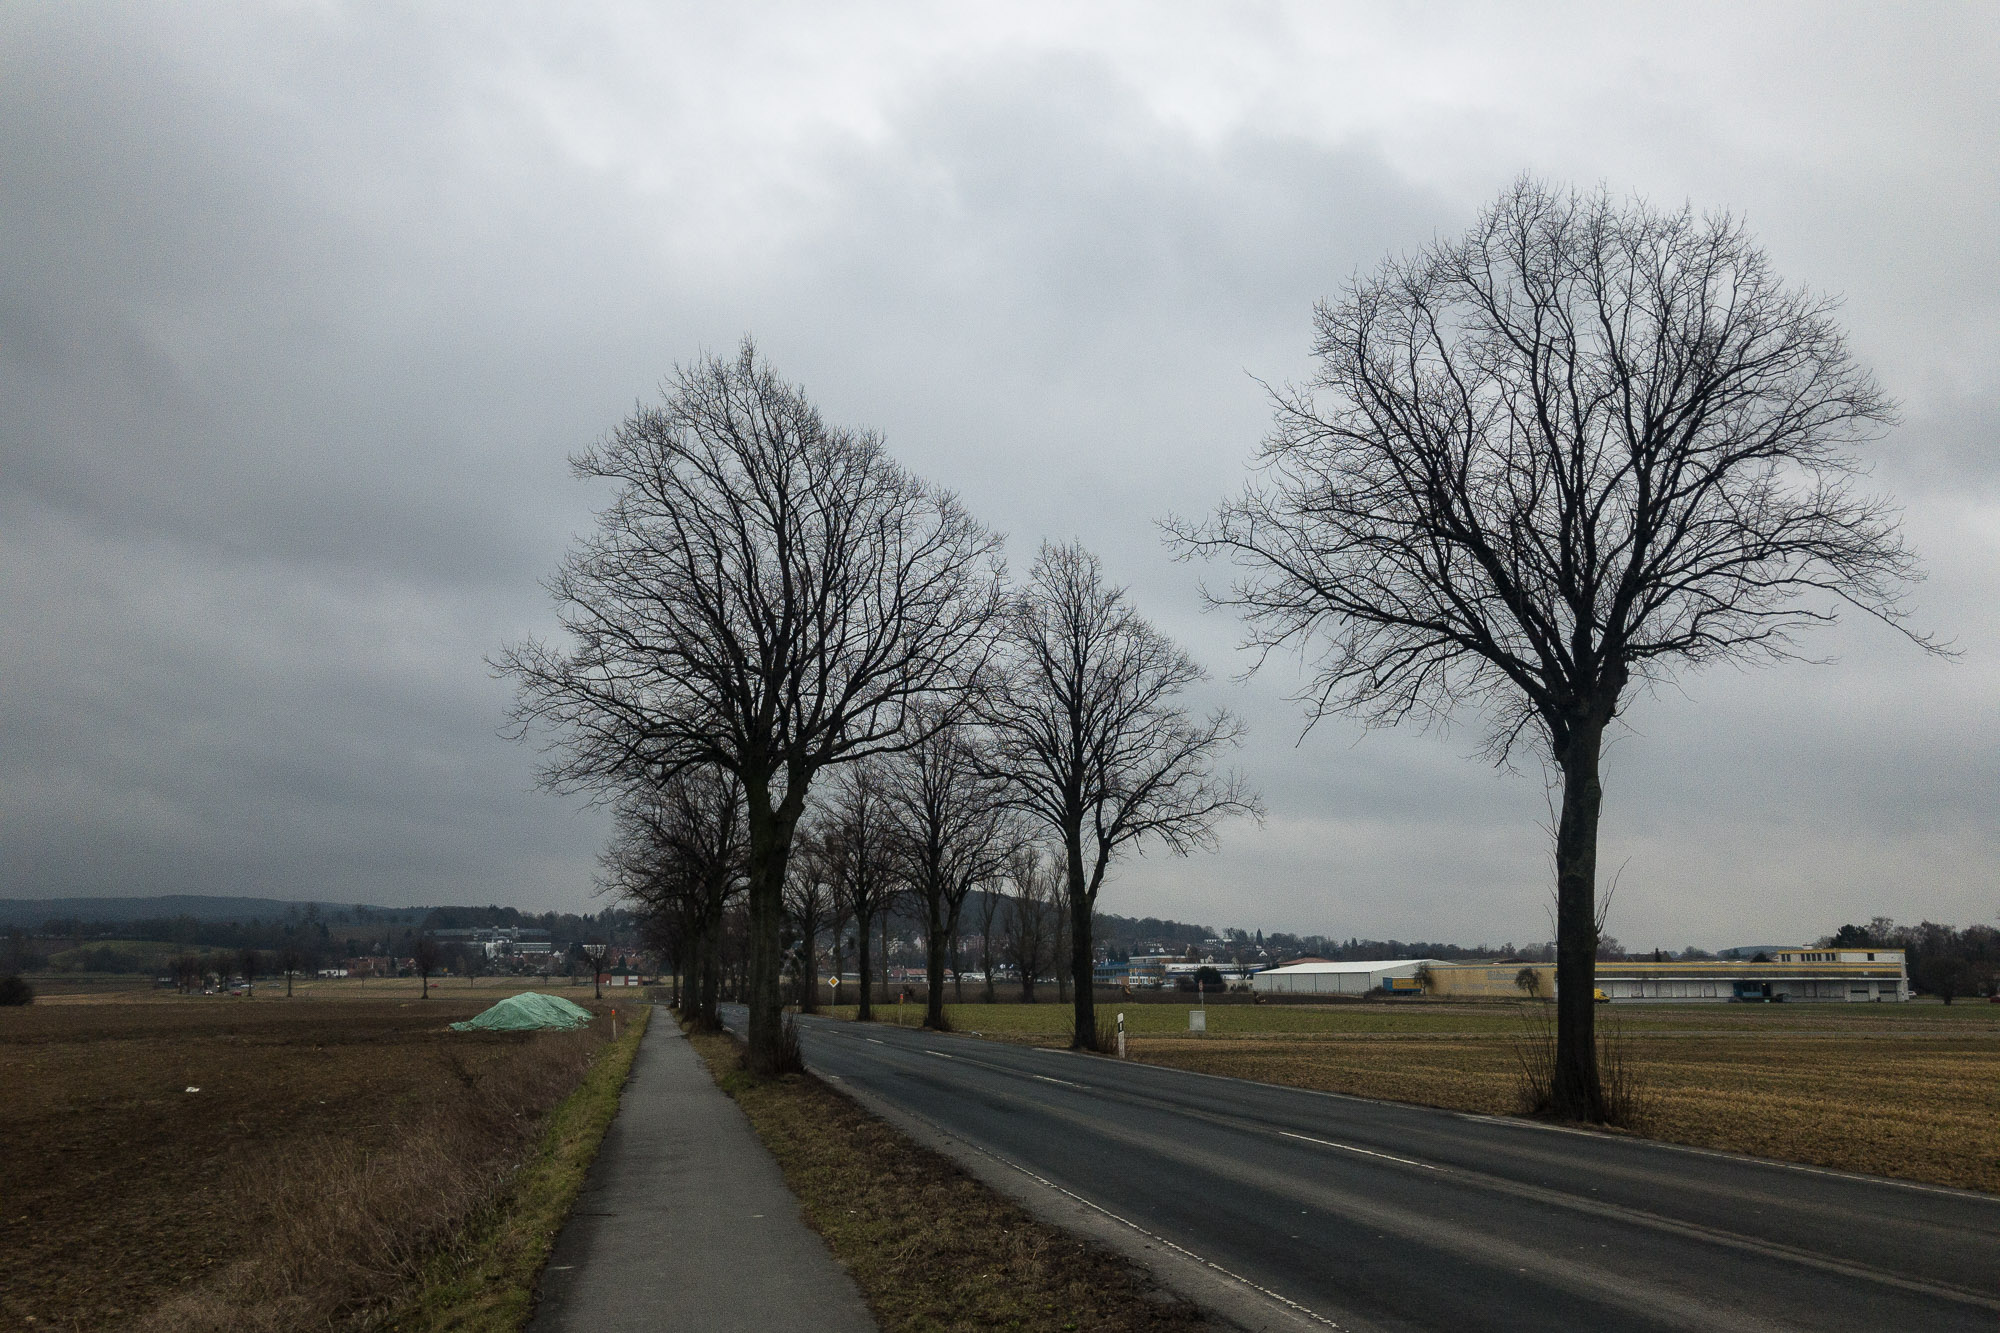 walk from Haste to Bad Nenndorf